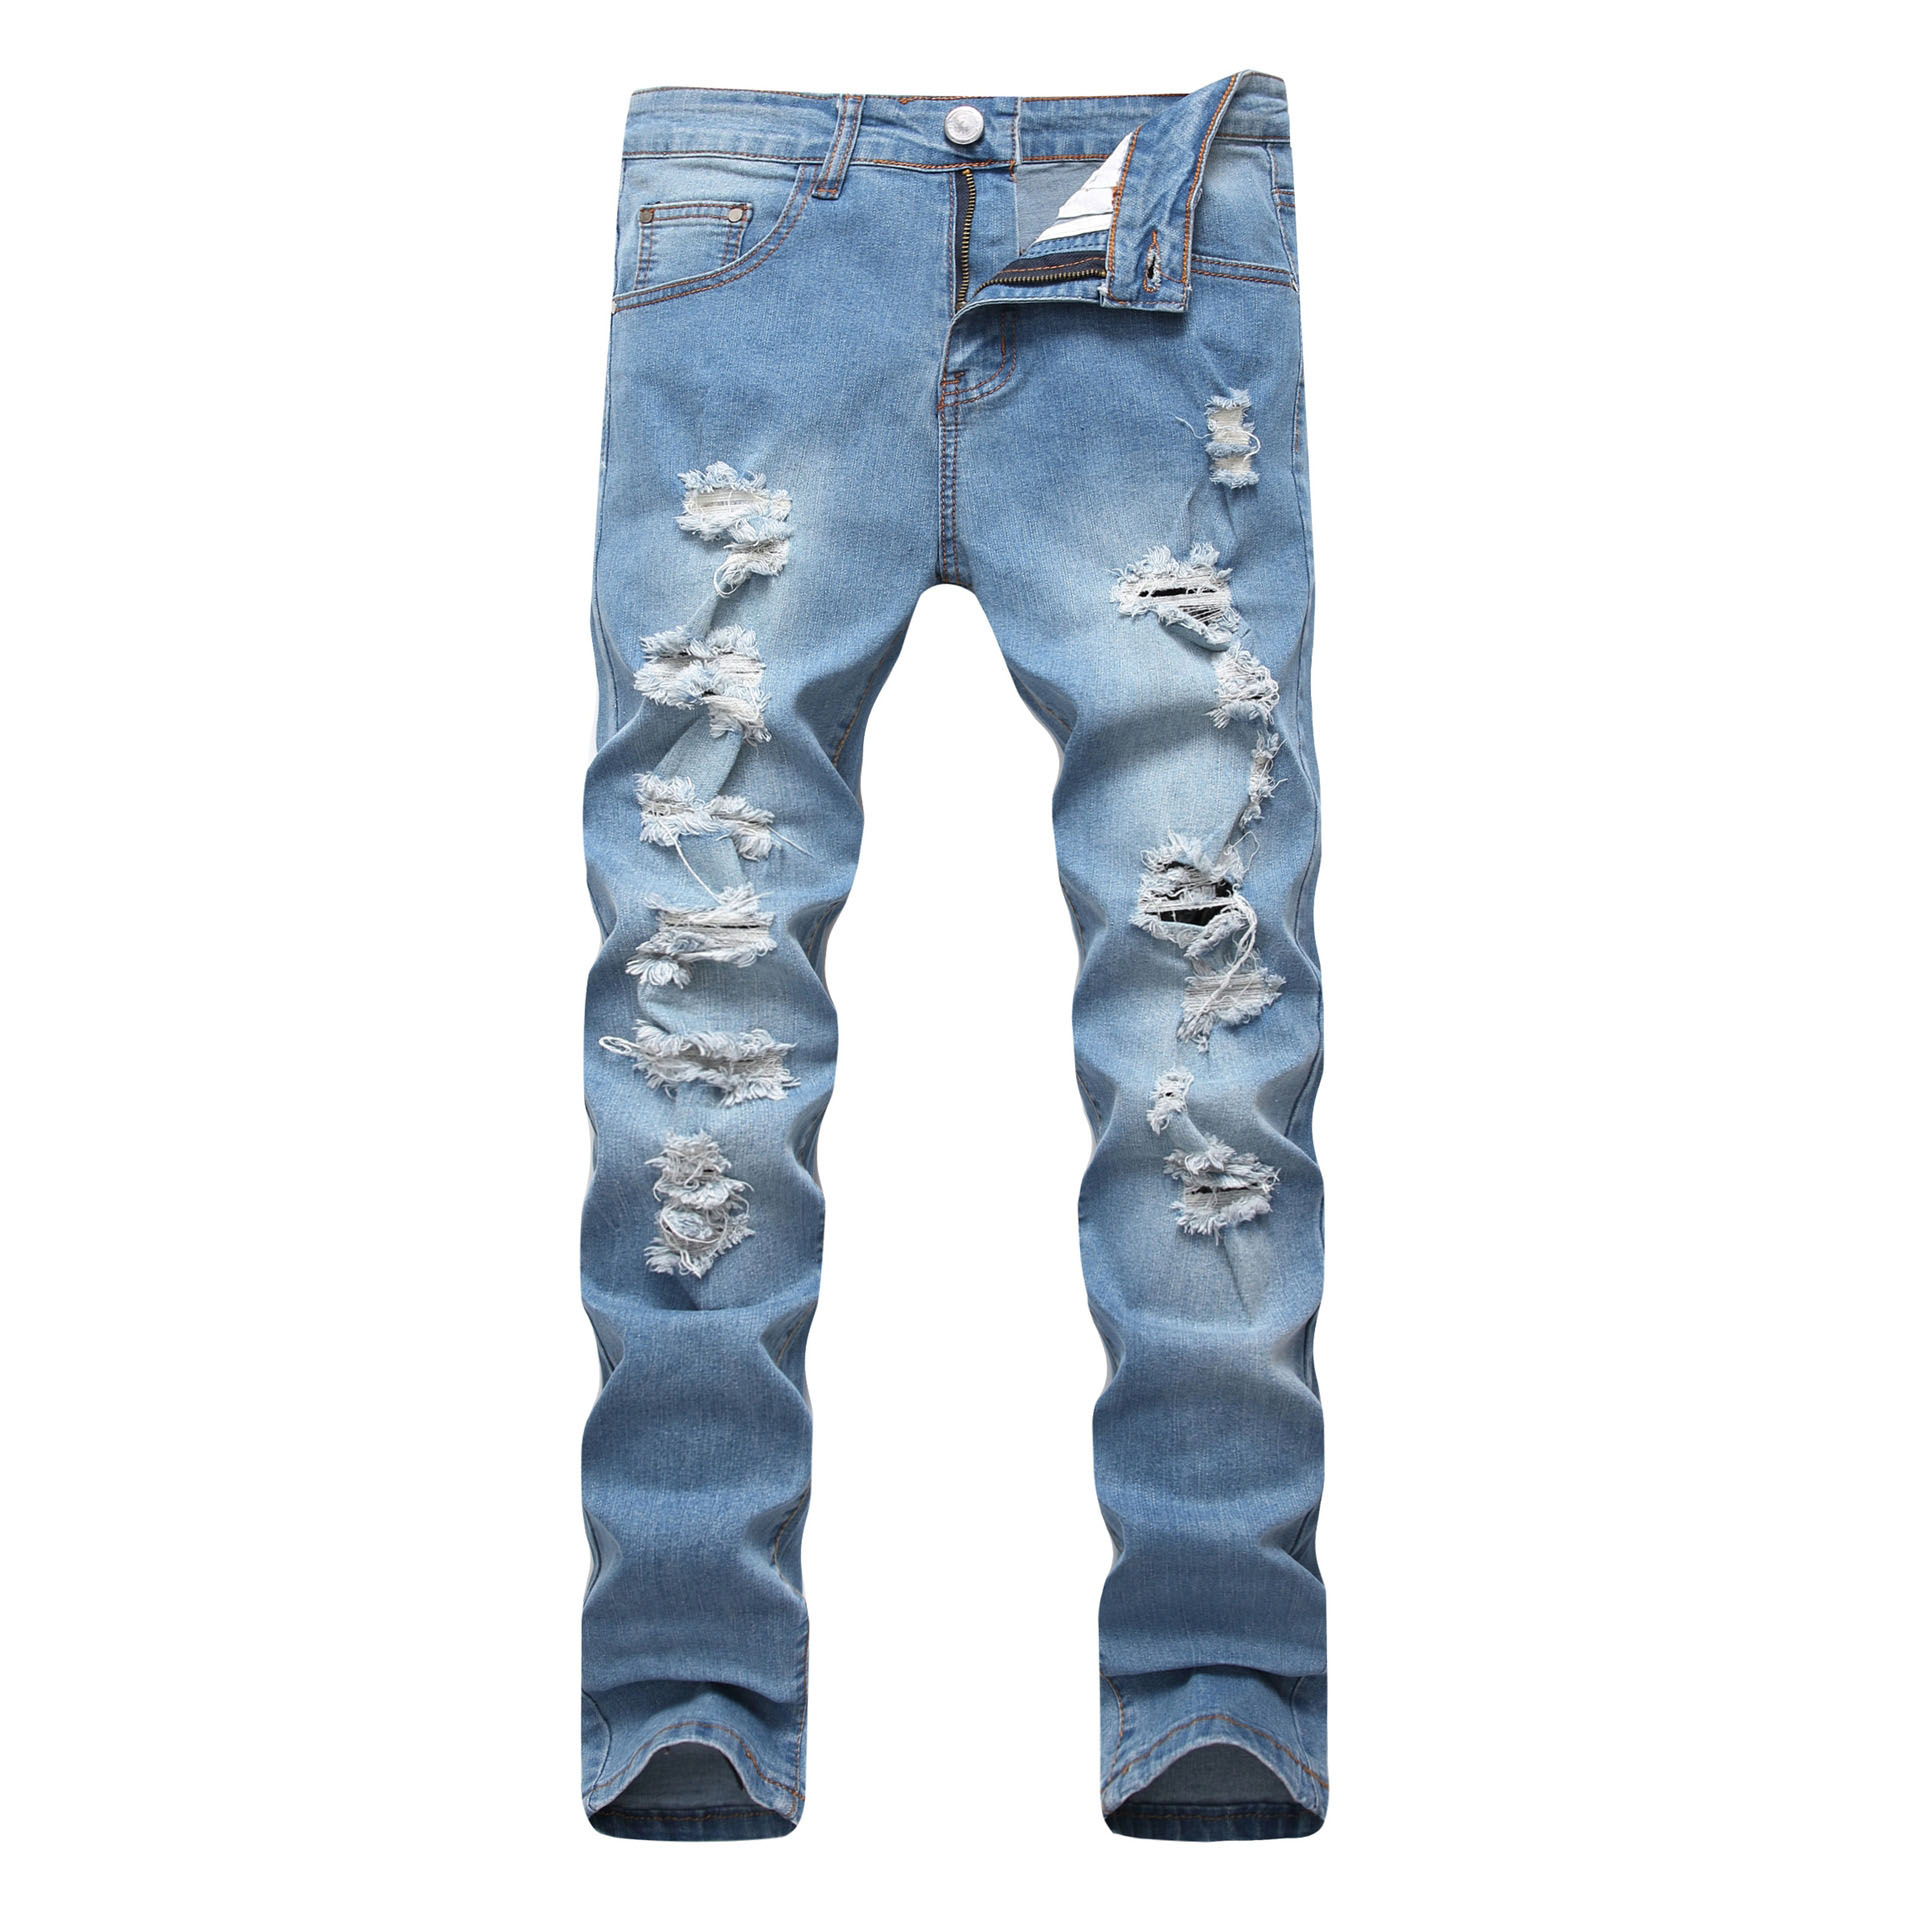 Men's Ripped Jeans 2018 Designer Pants Slim Fit Light Blue Denim Joggers Male Distressed Destroyed Trousers Button Fly Pants